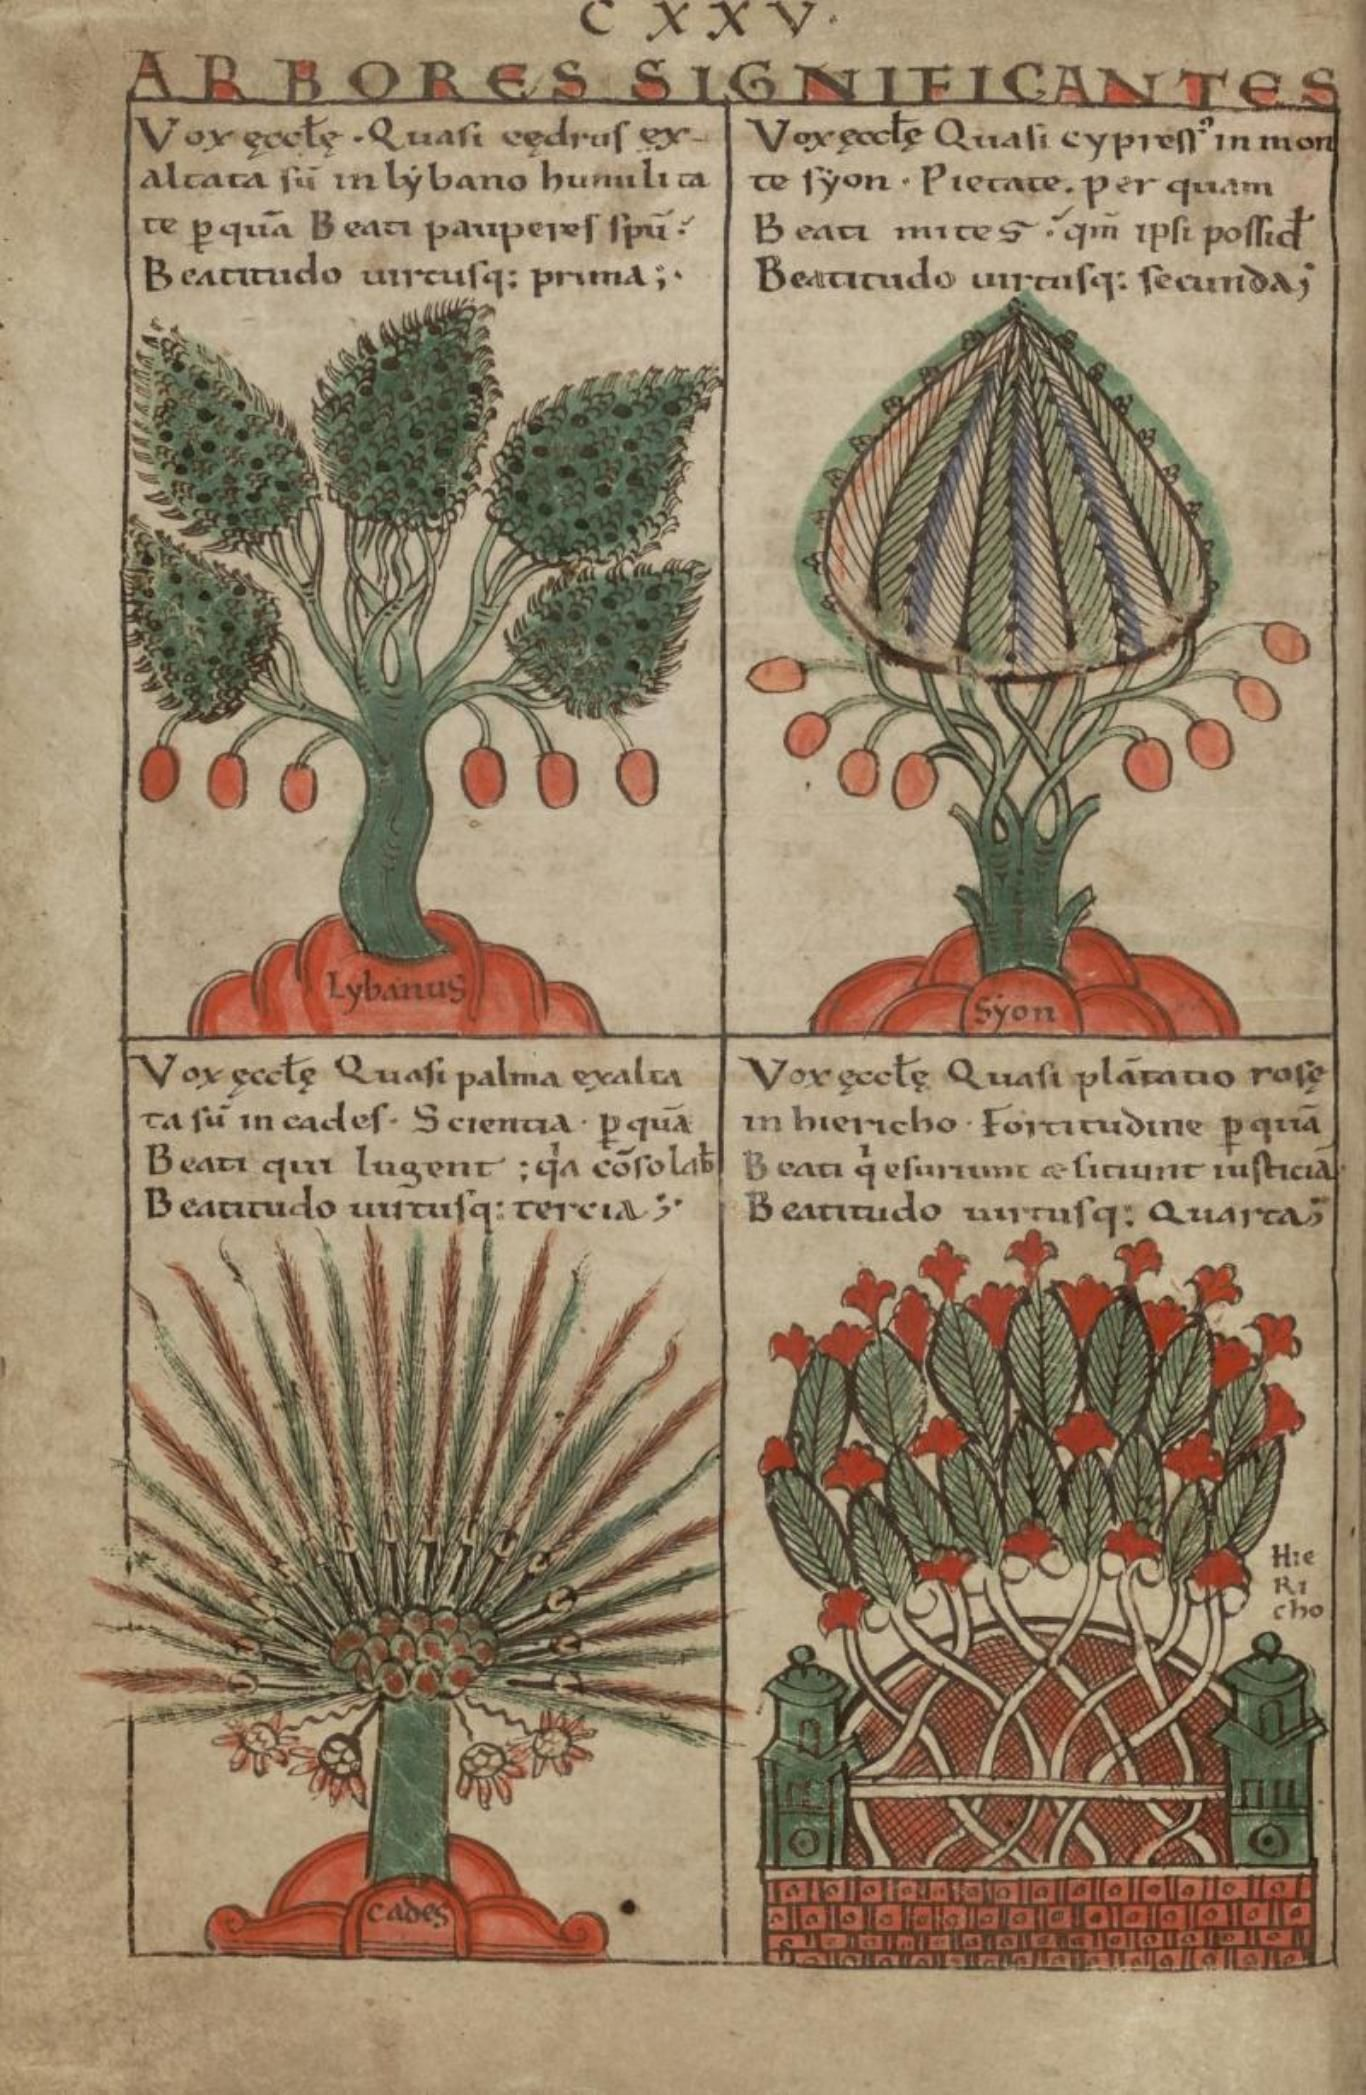 "The trees and their symbolic significance: cedar - 1st beatitude, cypress - 2nd beatitude, palm tree - 3rd beatitude, rose bush - 4th beatitude (Sermon on the Mount), in ""Liber Floridus"", creation: 1120, author: Lambert of Saint Omer, edition: 1121, copy scribed by the author himself, folio 139v, Universiteitsbibliotheek Gent"